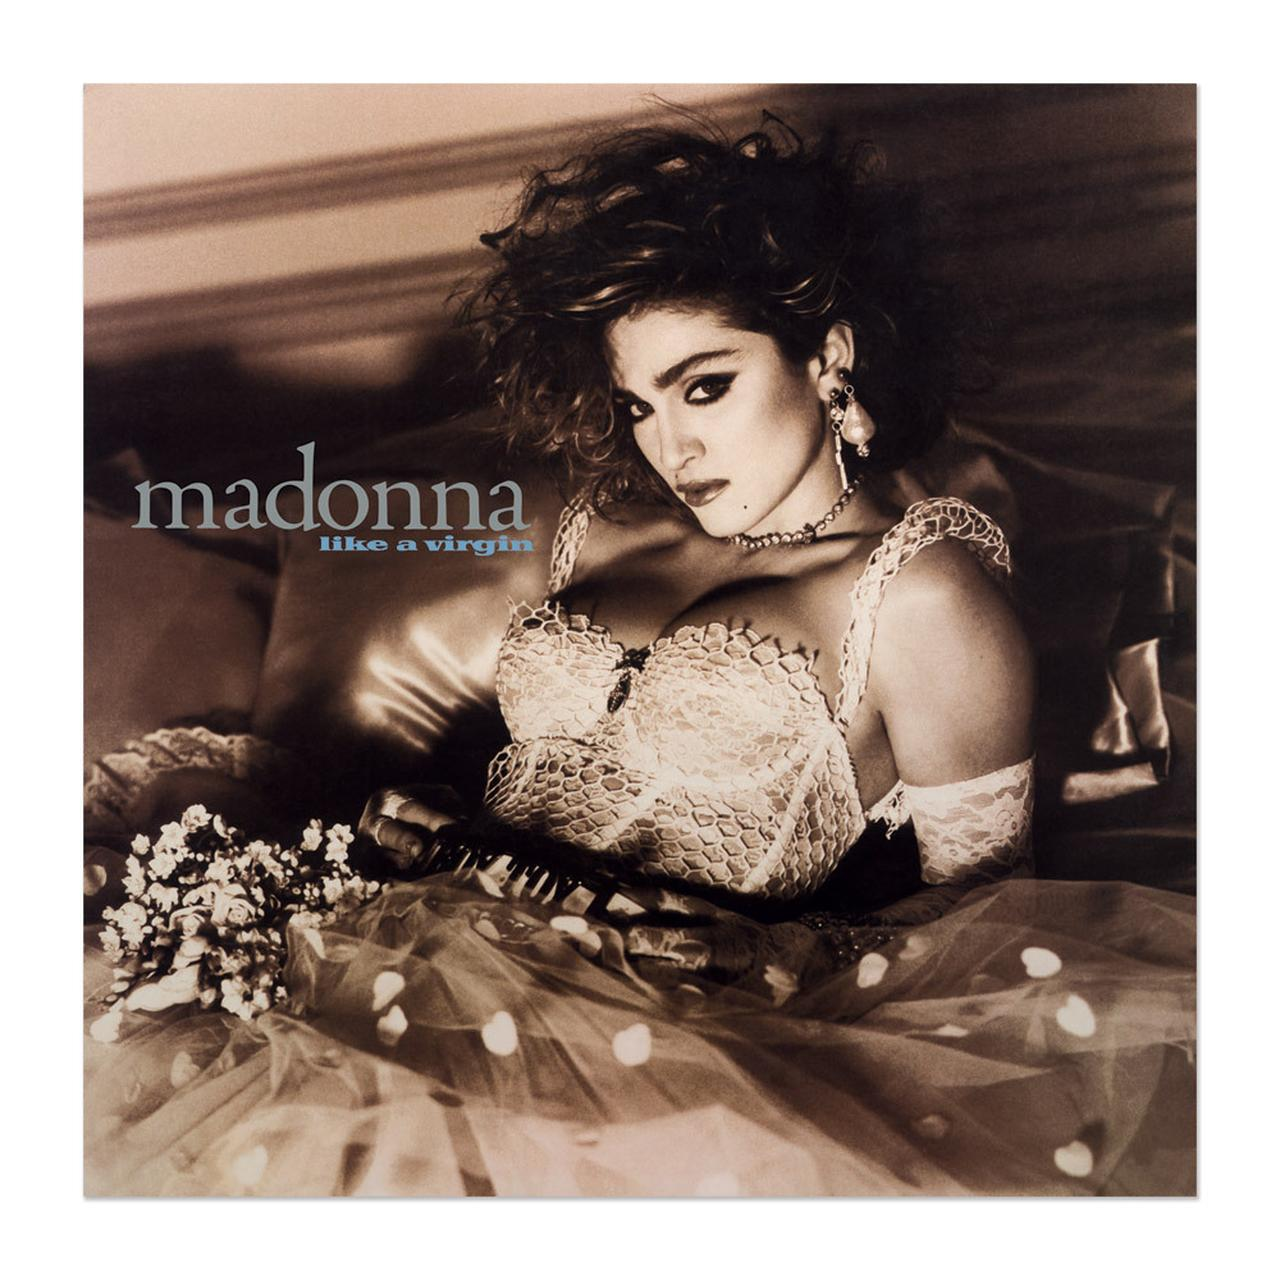 madonna official like a virgin album cover litho. Black Bedroom Furniture Sets. Home Design Ideas